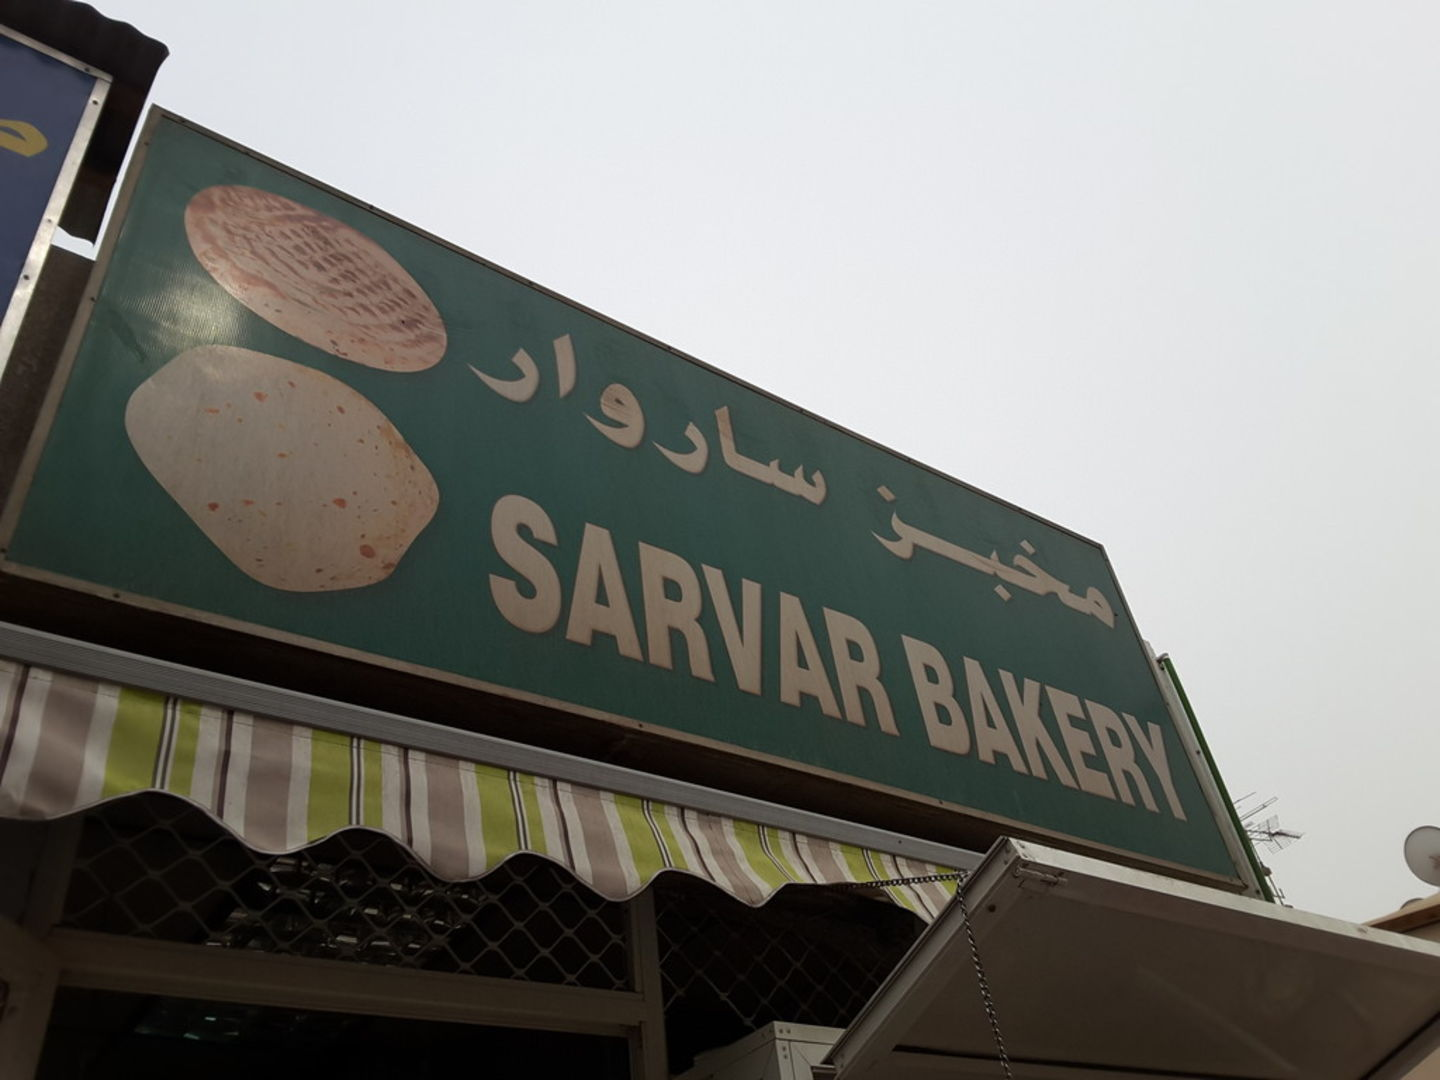 HiDubai-business-sarvar-bakery-food-beverage-bakeries-desserts-sweets-hor-al-anz-dubai-2